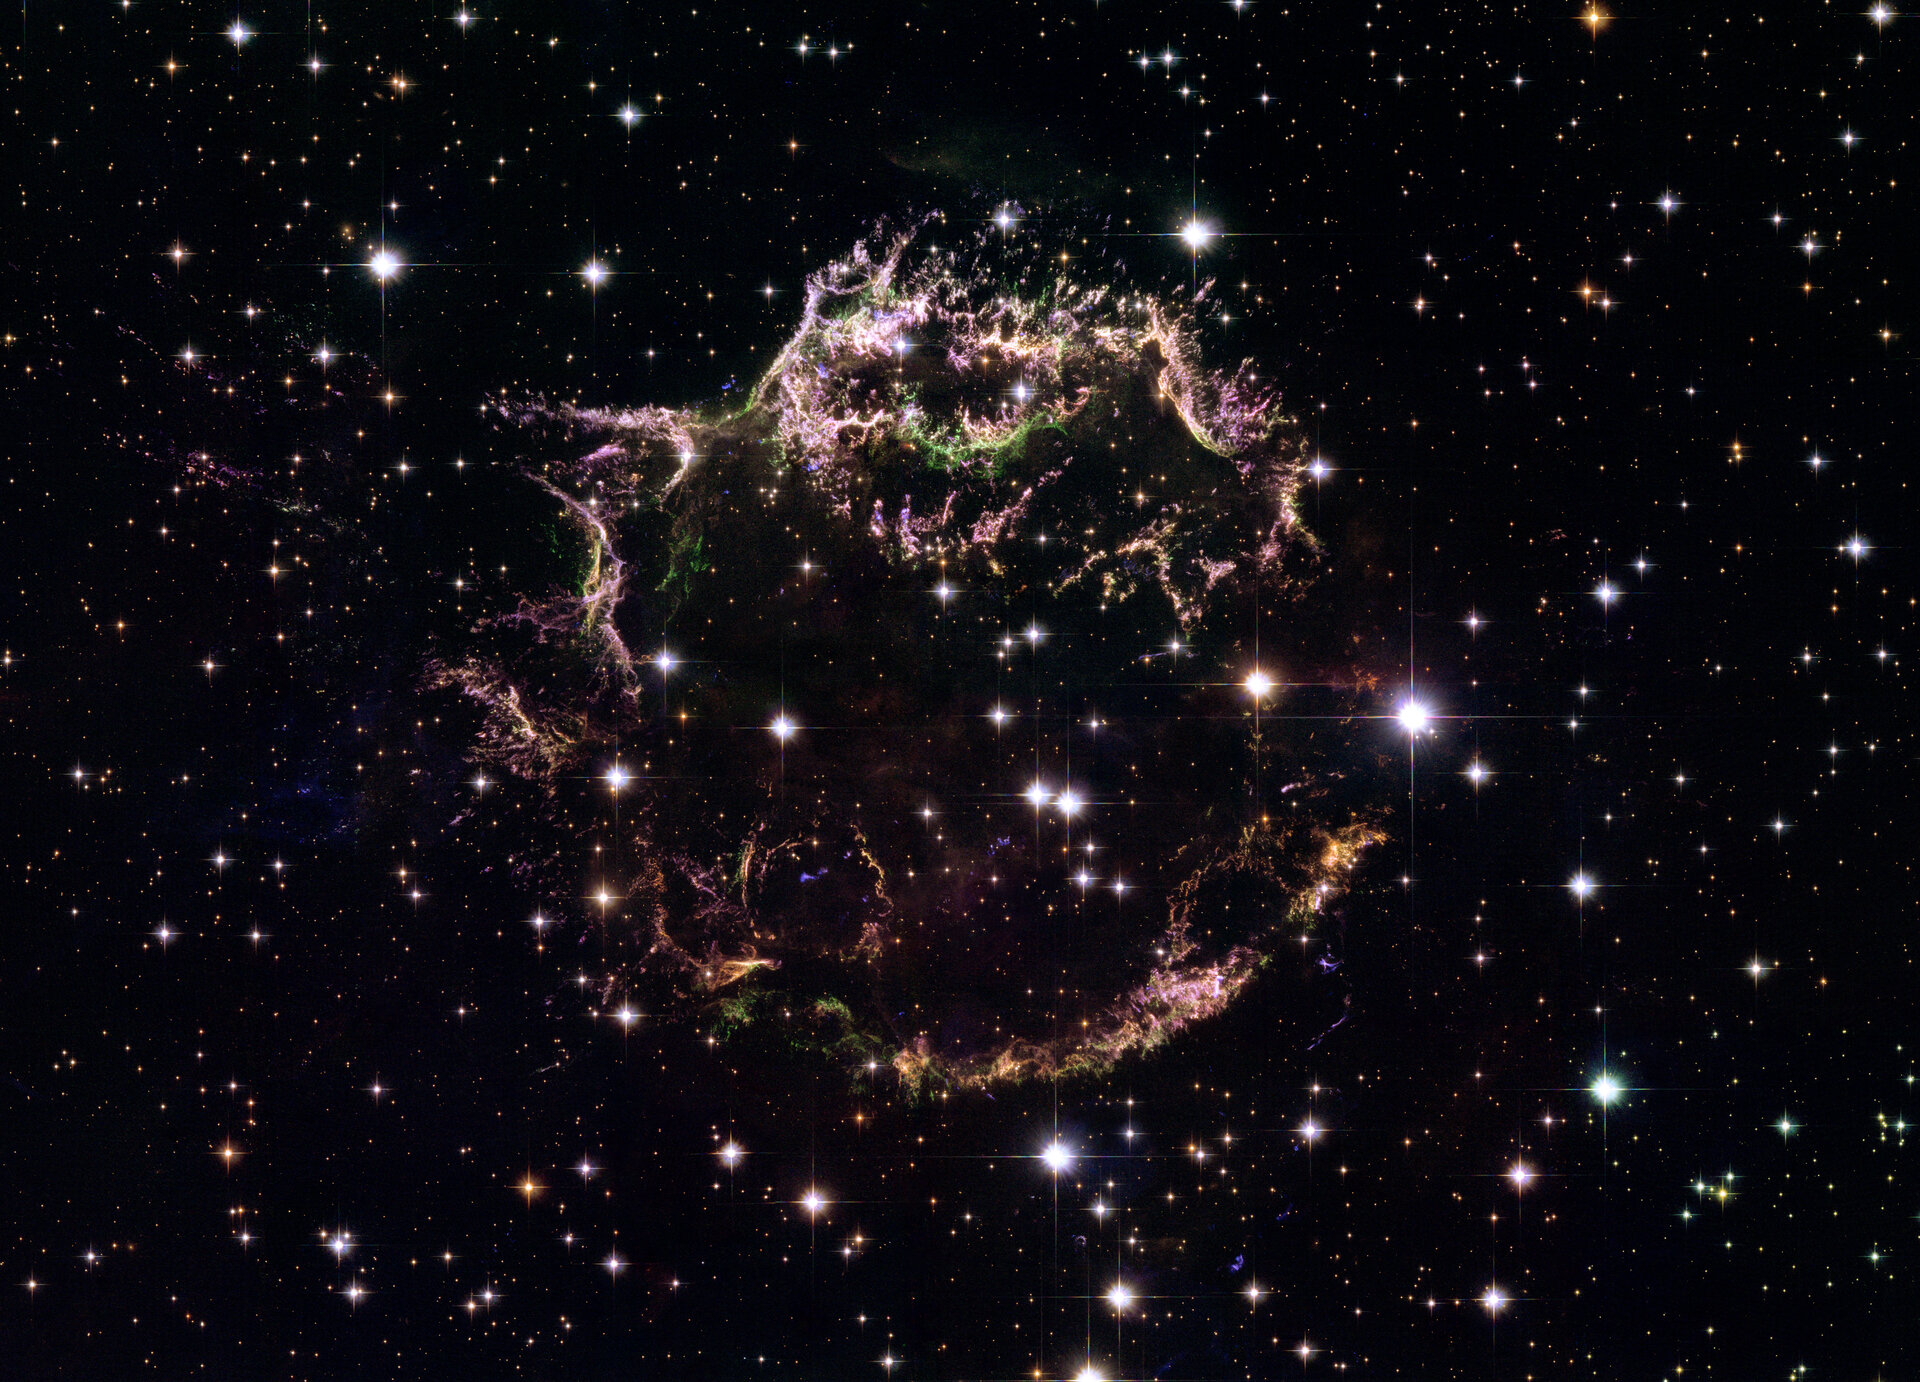 Hubble's view of supernova explosion Cassiopeia A